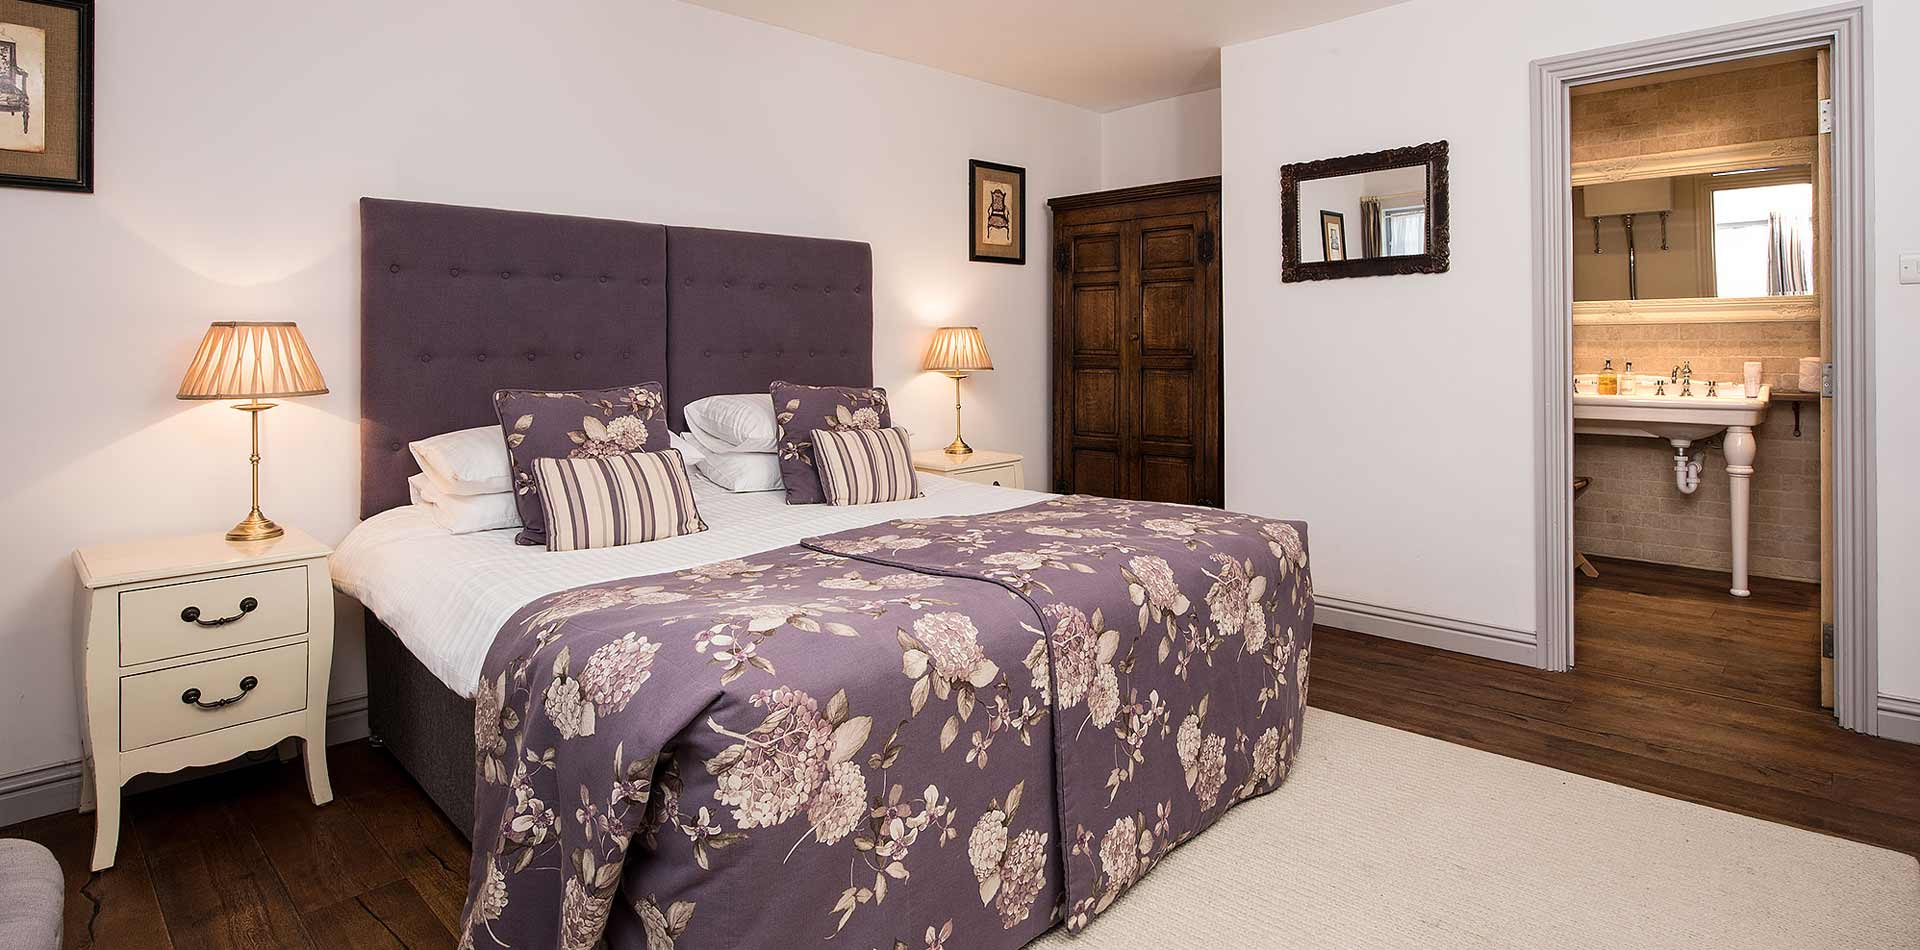 Luxury Accommodation near Arundel - The Lamb at Angmering